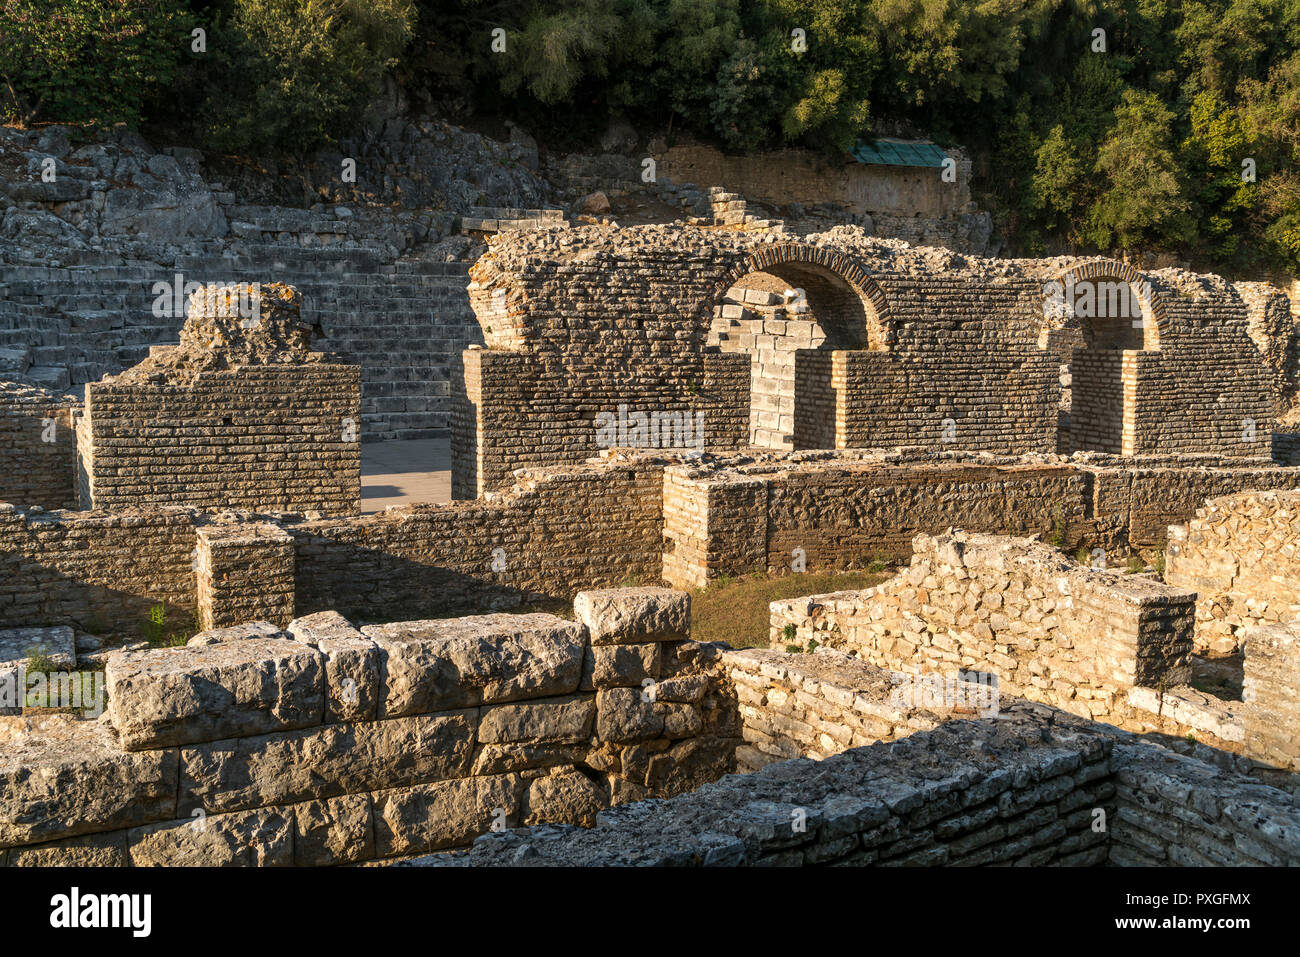 Asklepios-Heiligtum, Butrint, Albanien, Europa | Sanctuary of Asclepius in Butrint or Buthrotum, Albania, Europe Stock Photo